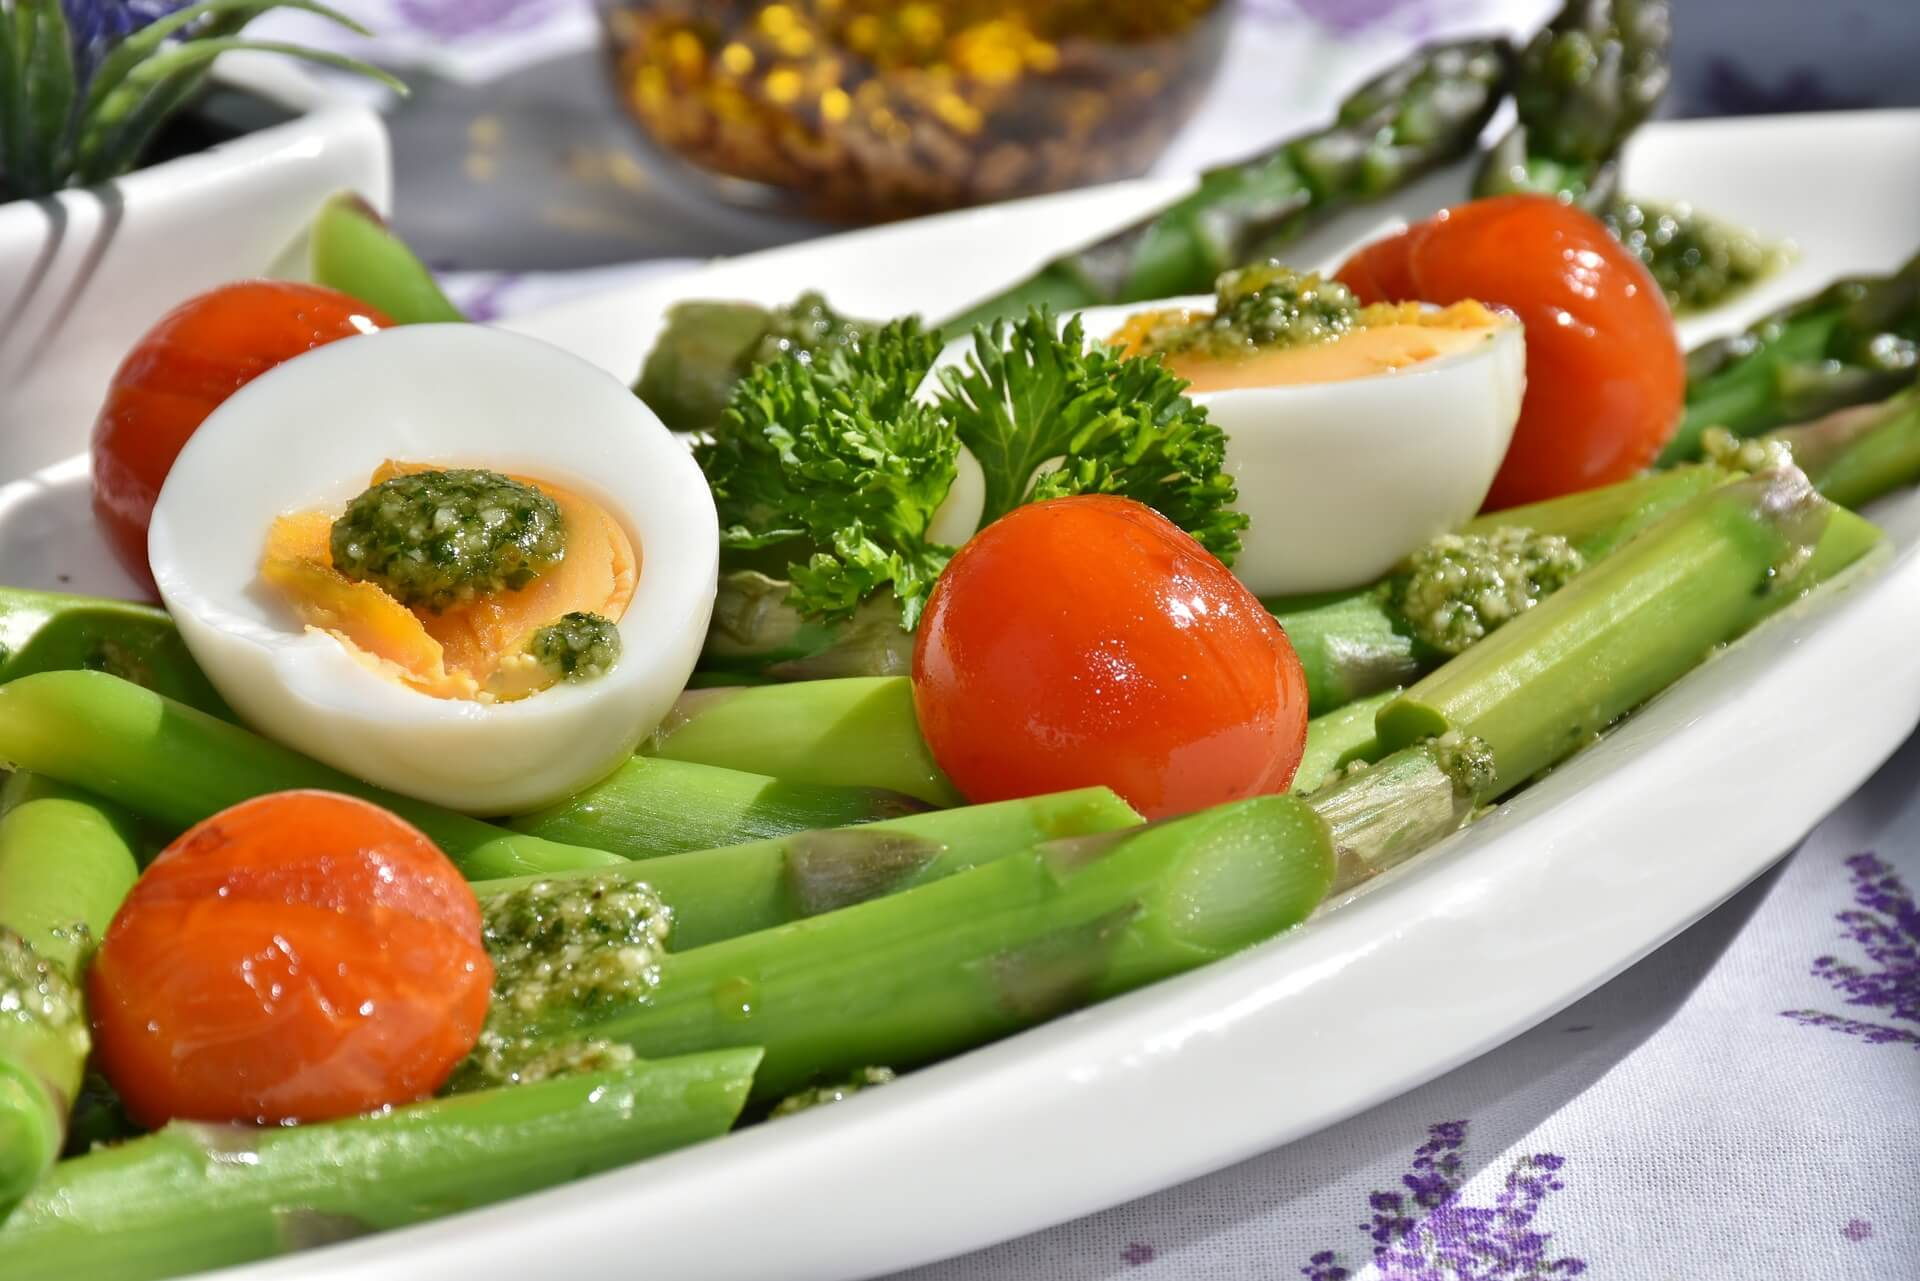 Stunning Health Benefits of Eating Eggs